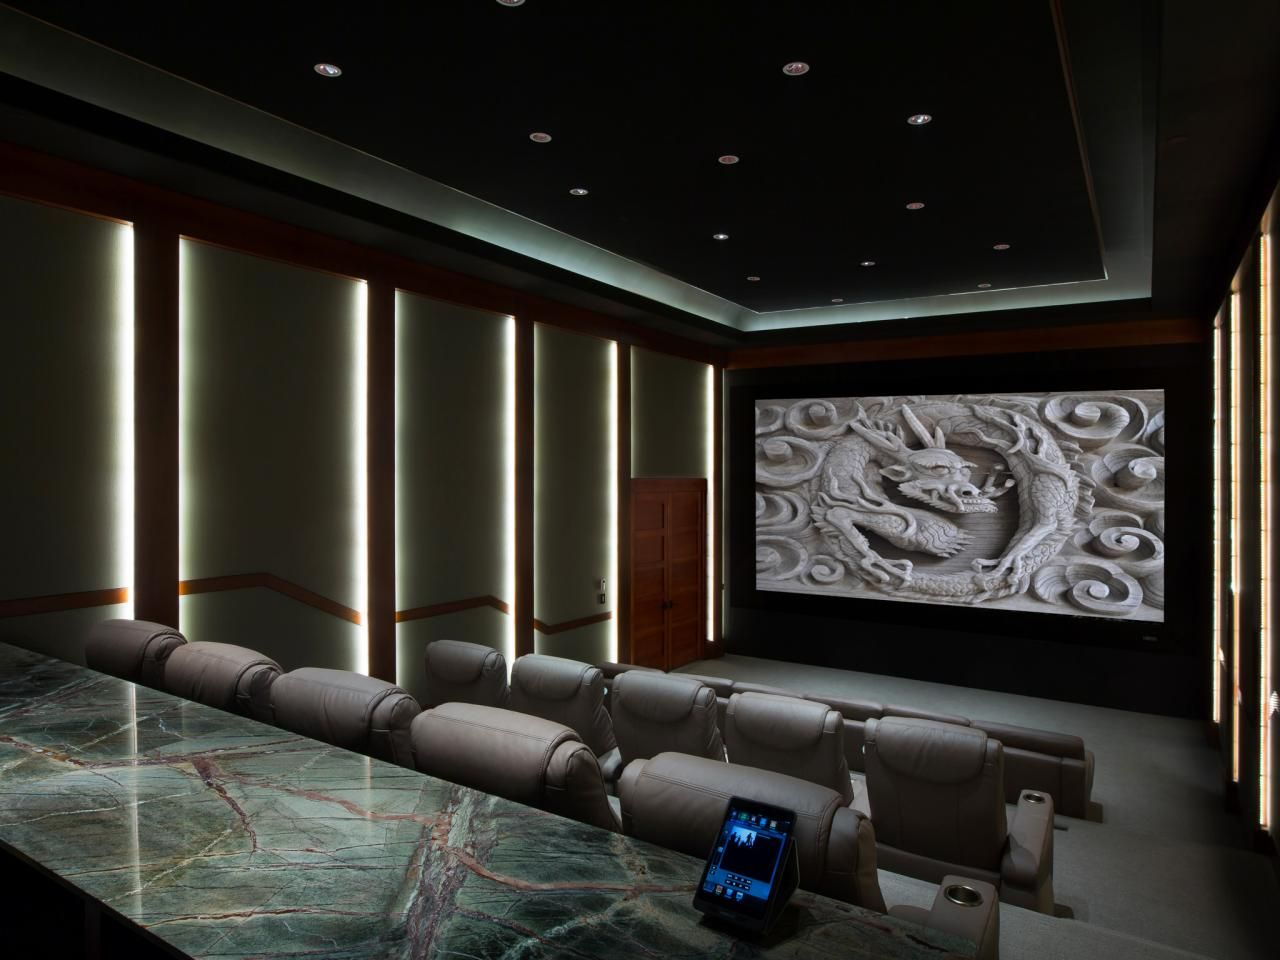 Home Theater Designs From Cedia 2014 Finalists Home Theater Design Home Theater Seating Home Theater Installation